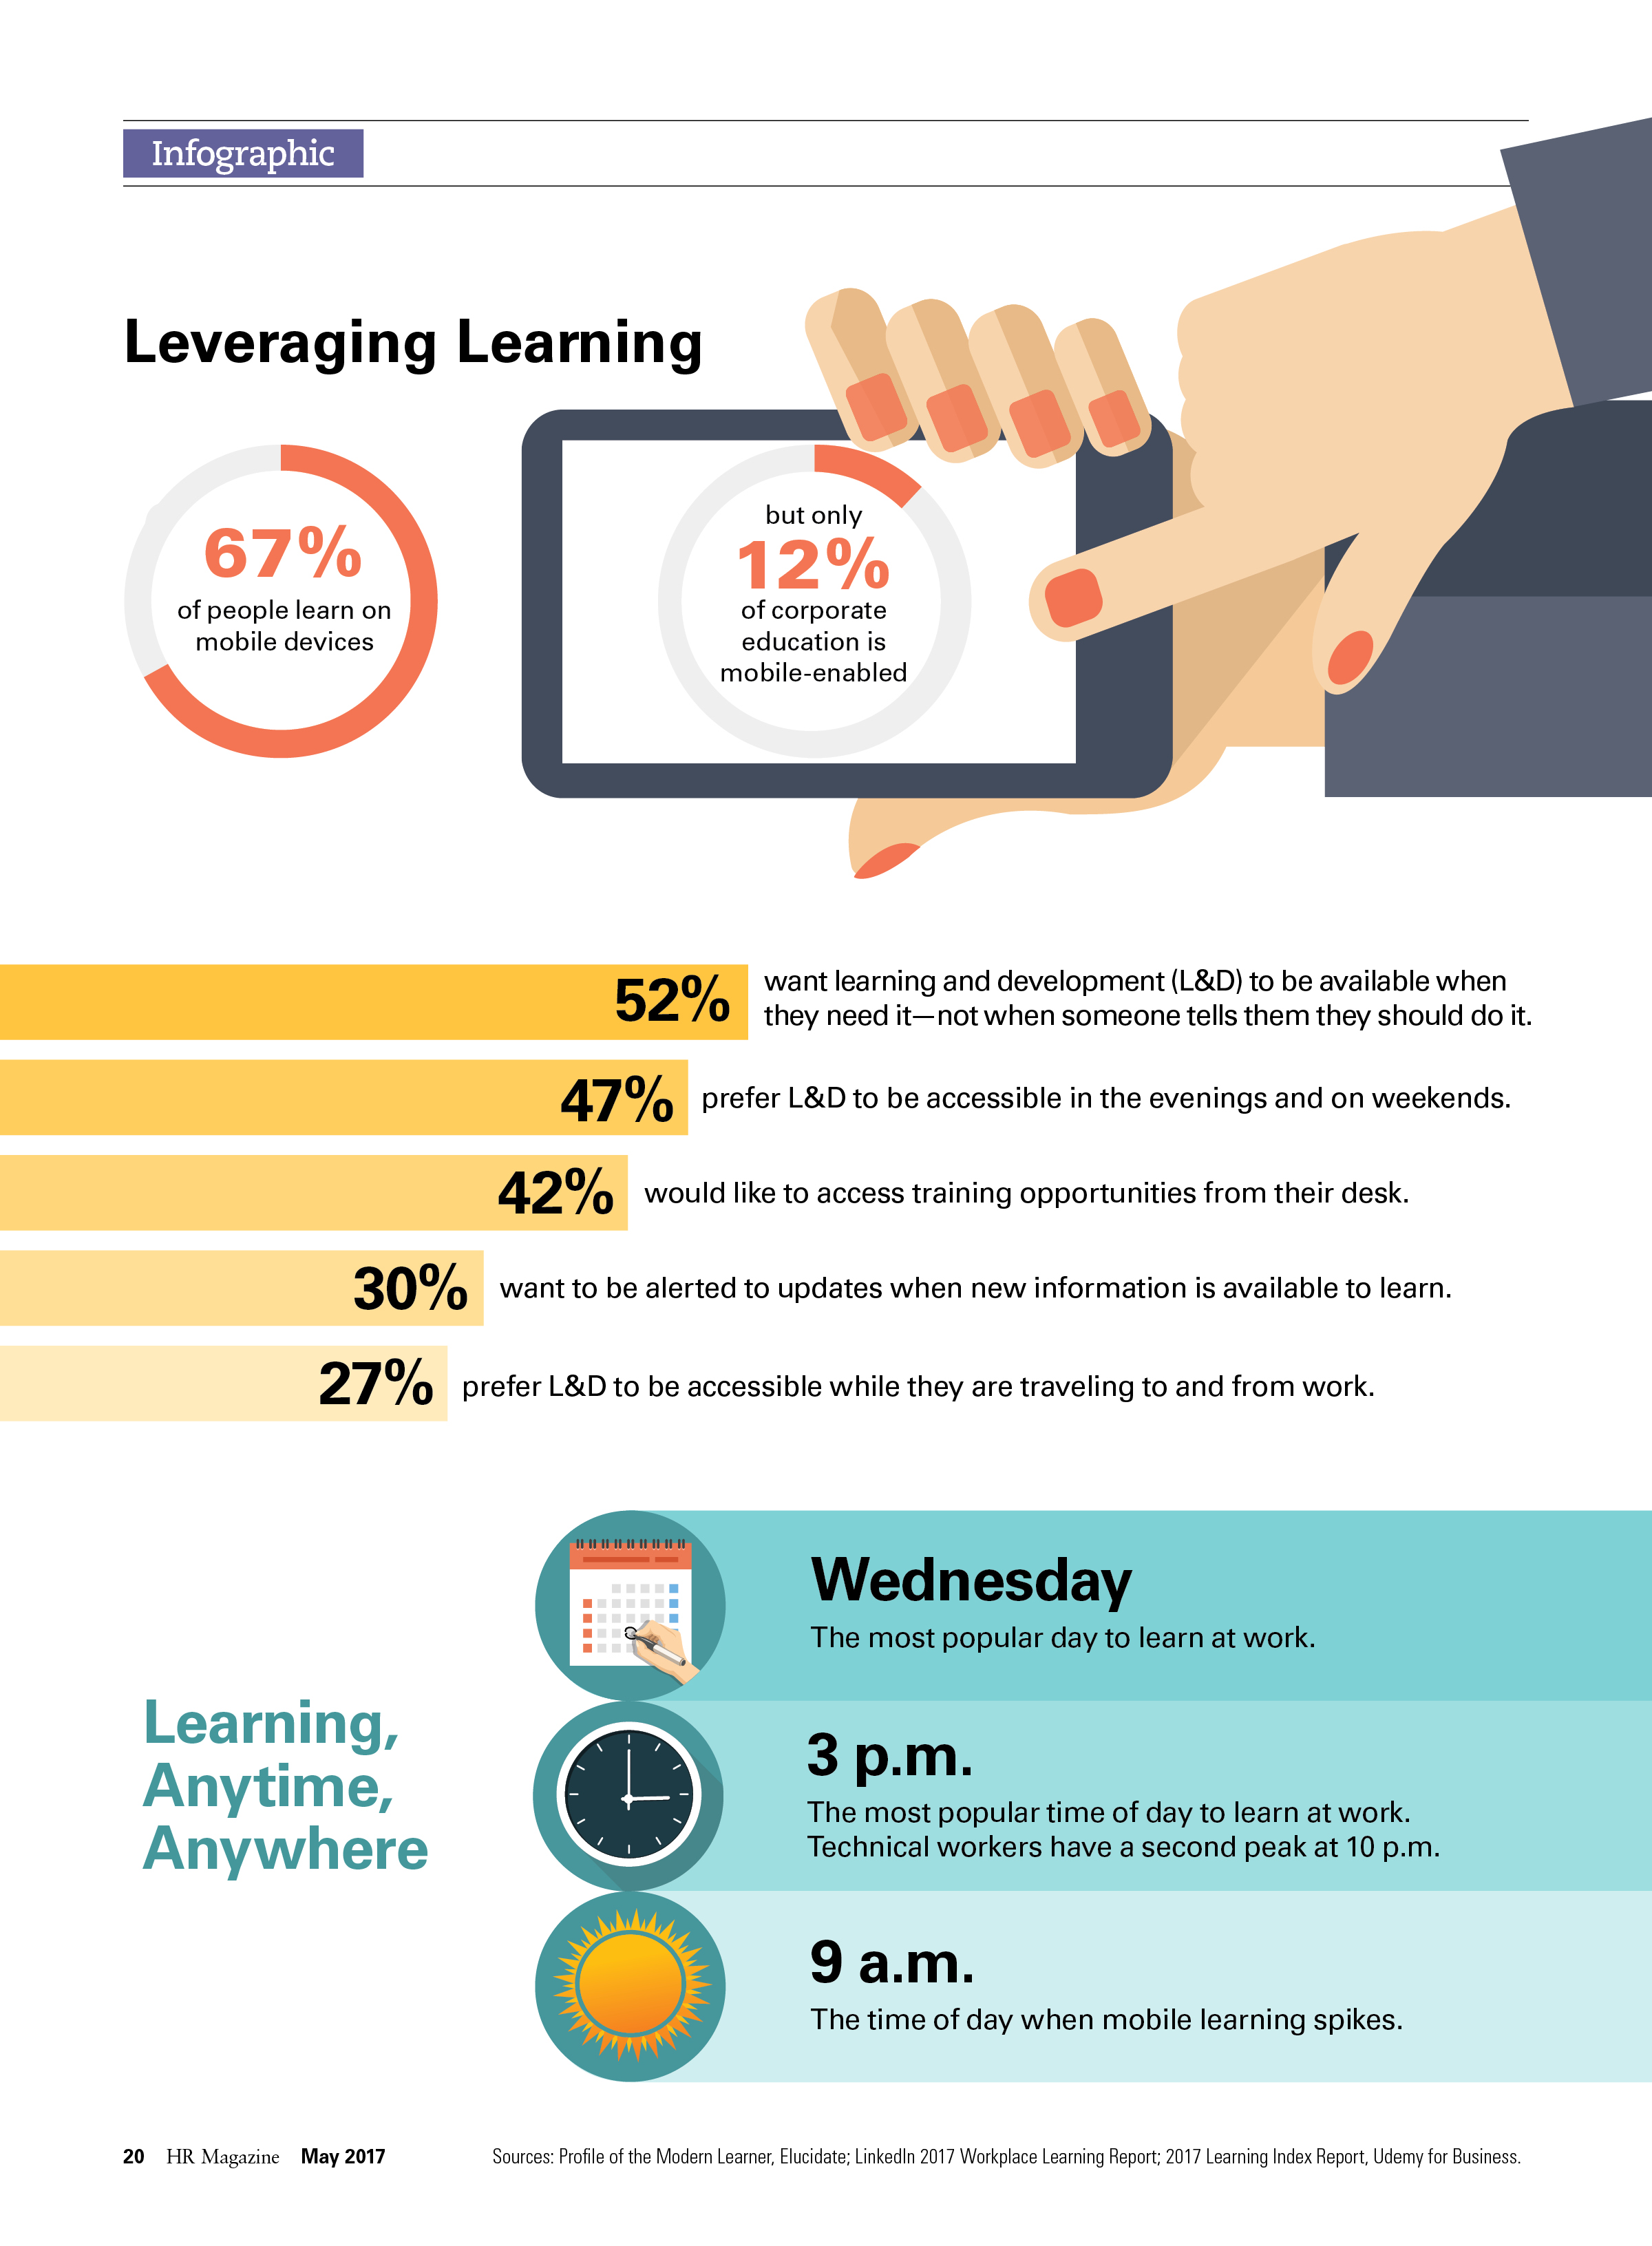 Leveraging Learning Infographic